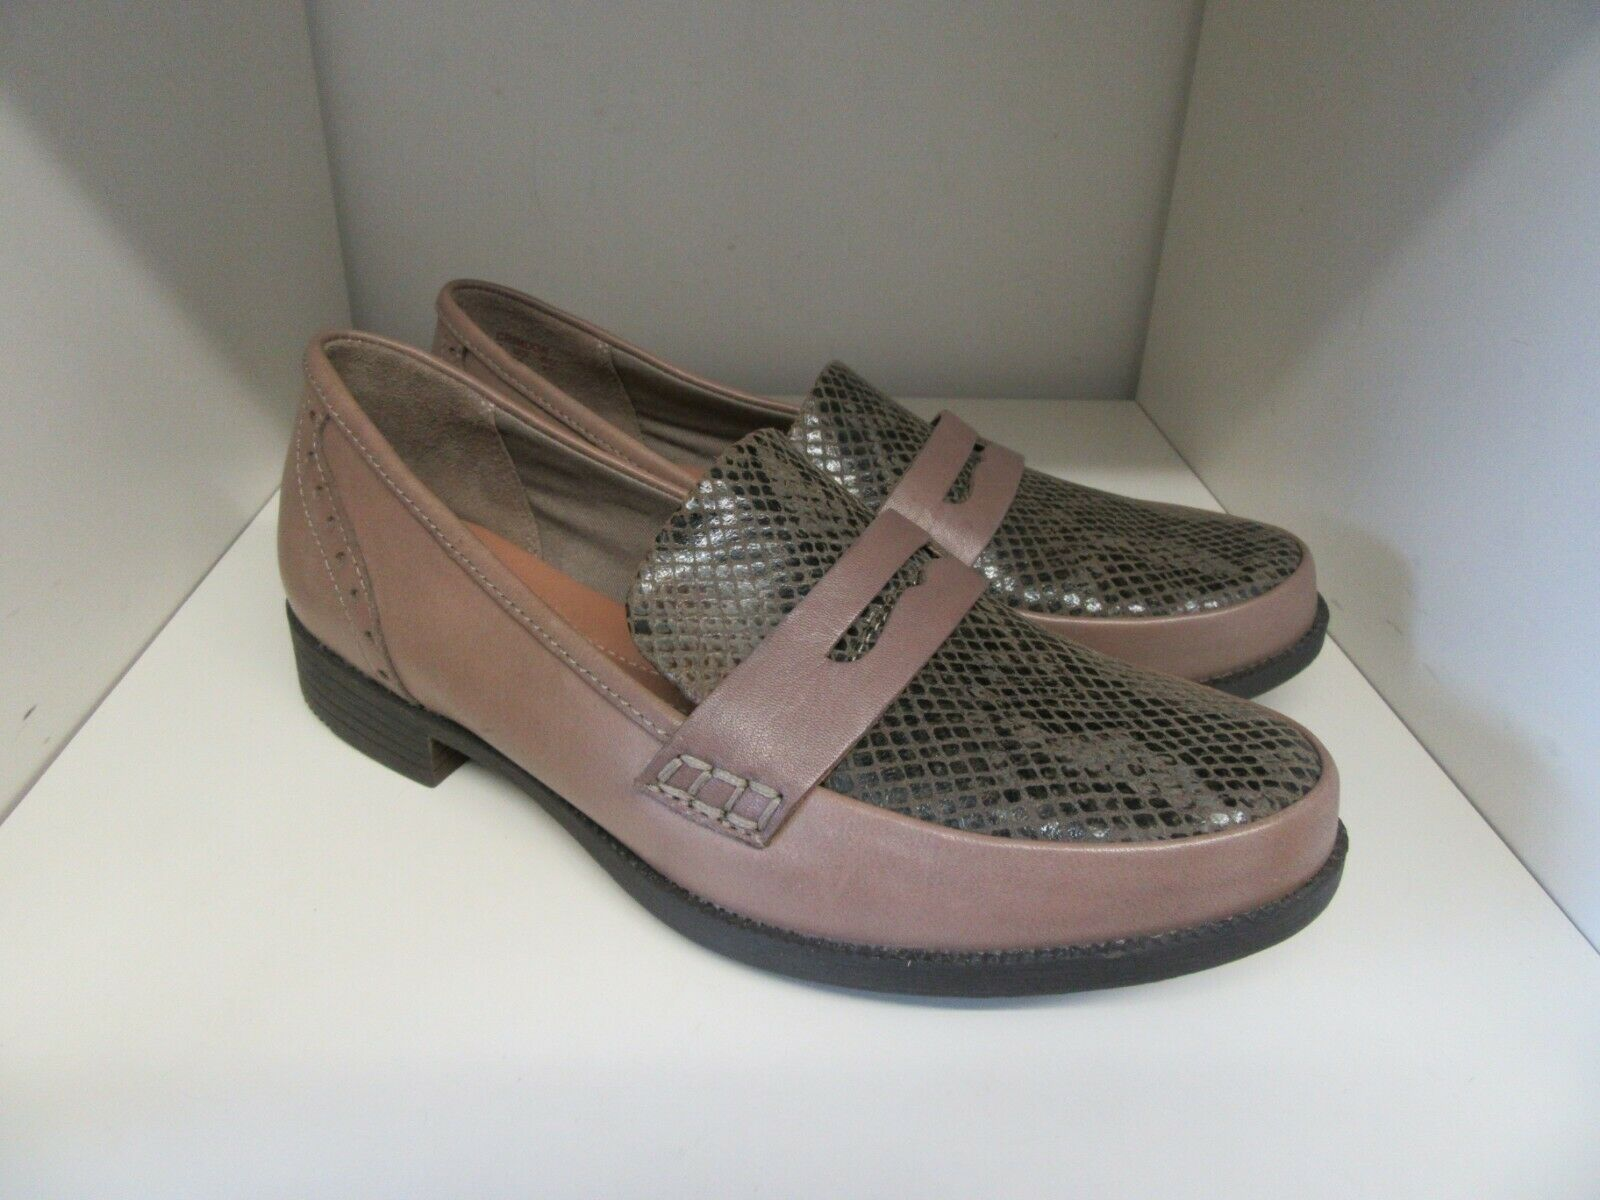 HOTTER CRIMDON TAUPE SNAKESKIN LEATHER LOAFER chaussures Taille 4 STANDARD BRAND NEW